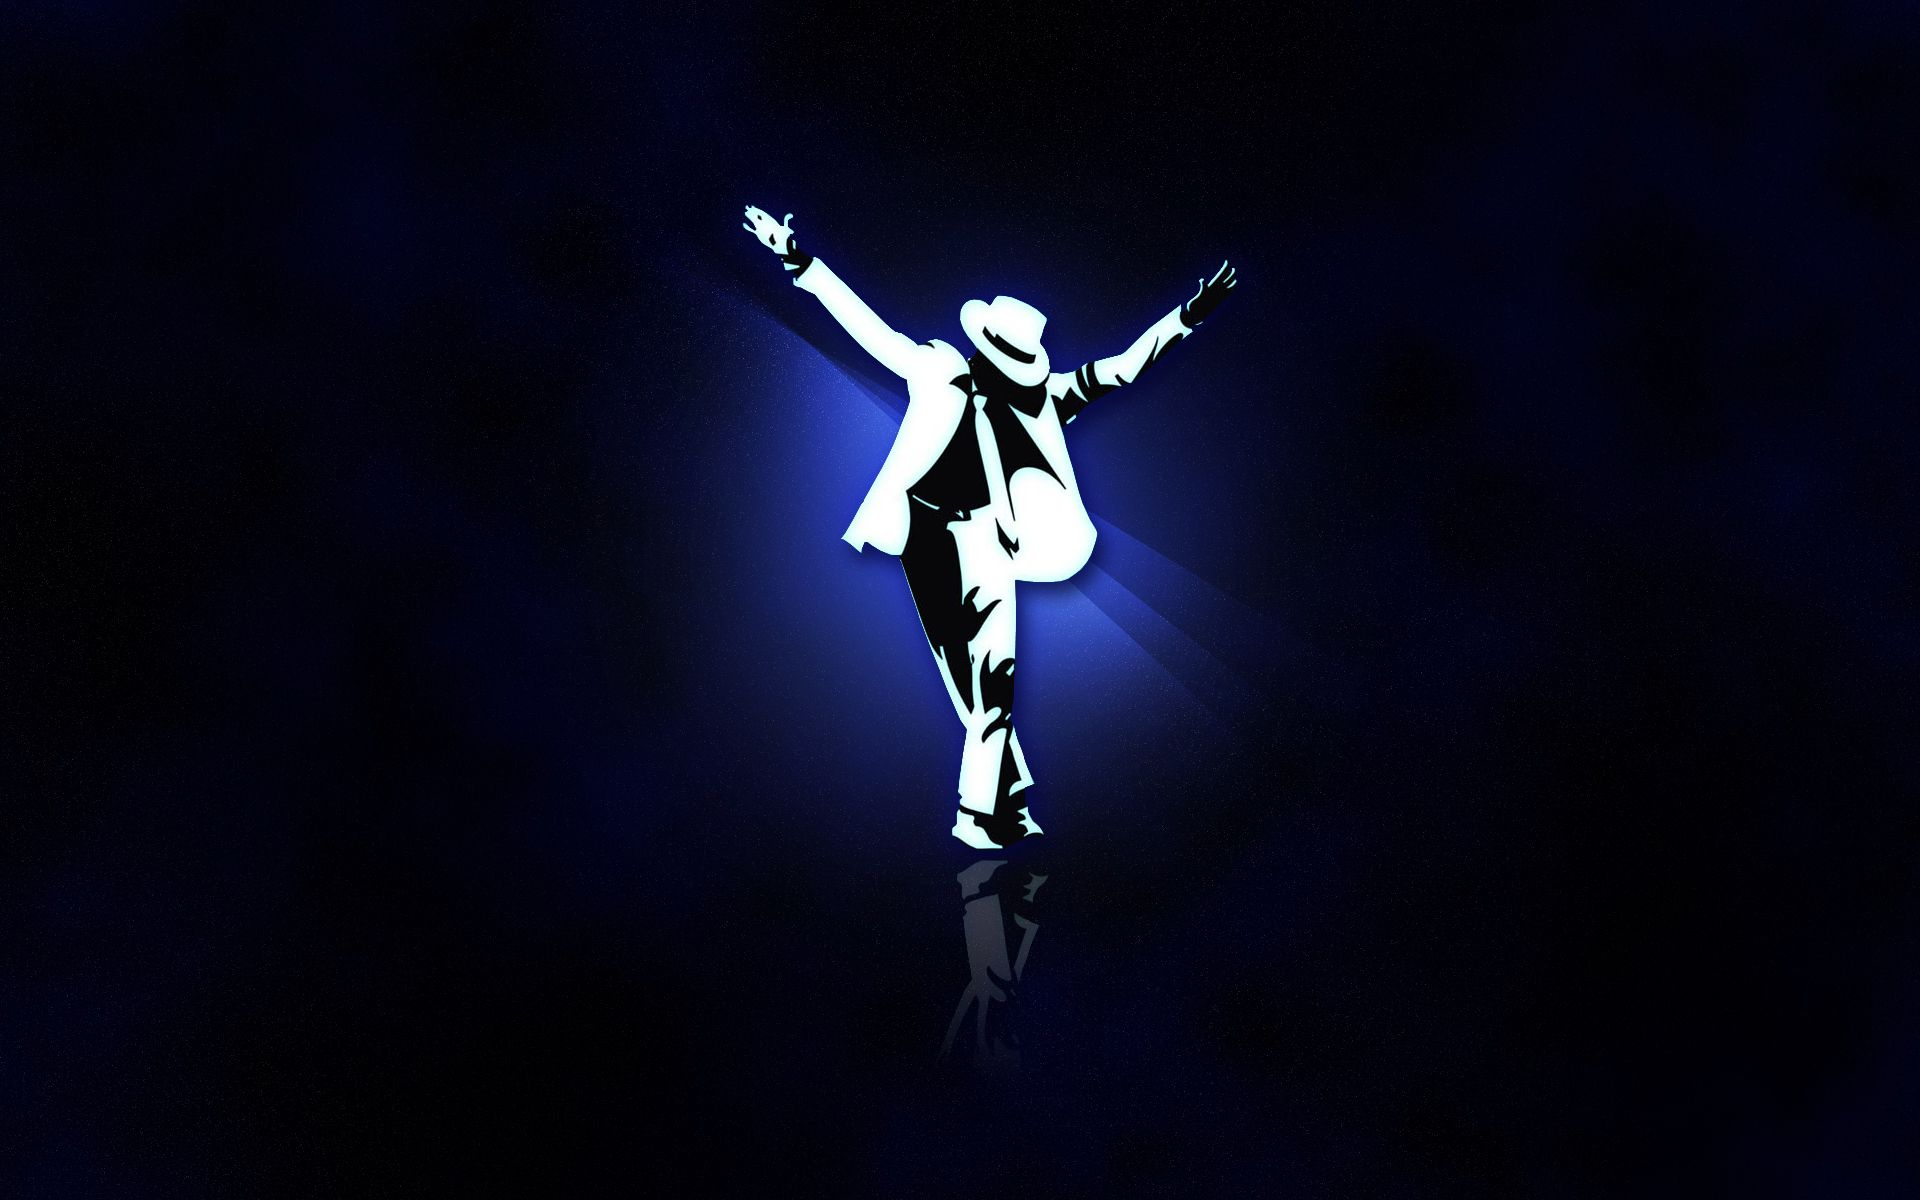 Tribute To Michael Jackson Wallpaper